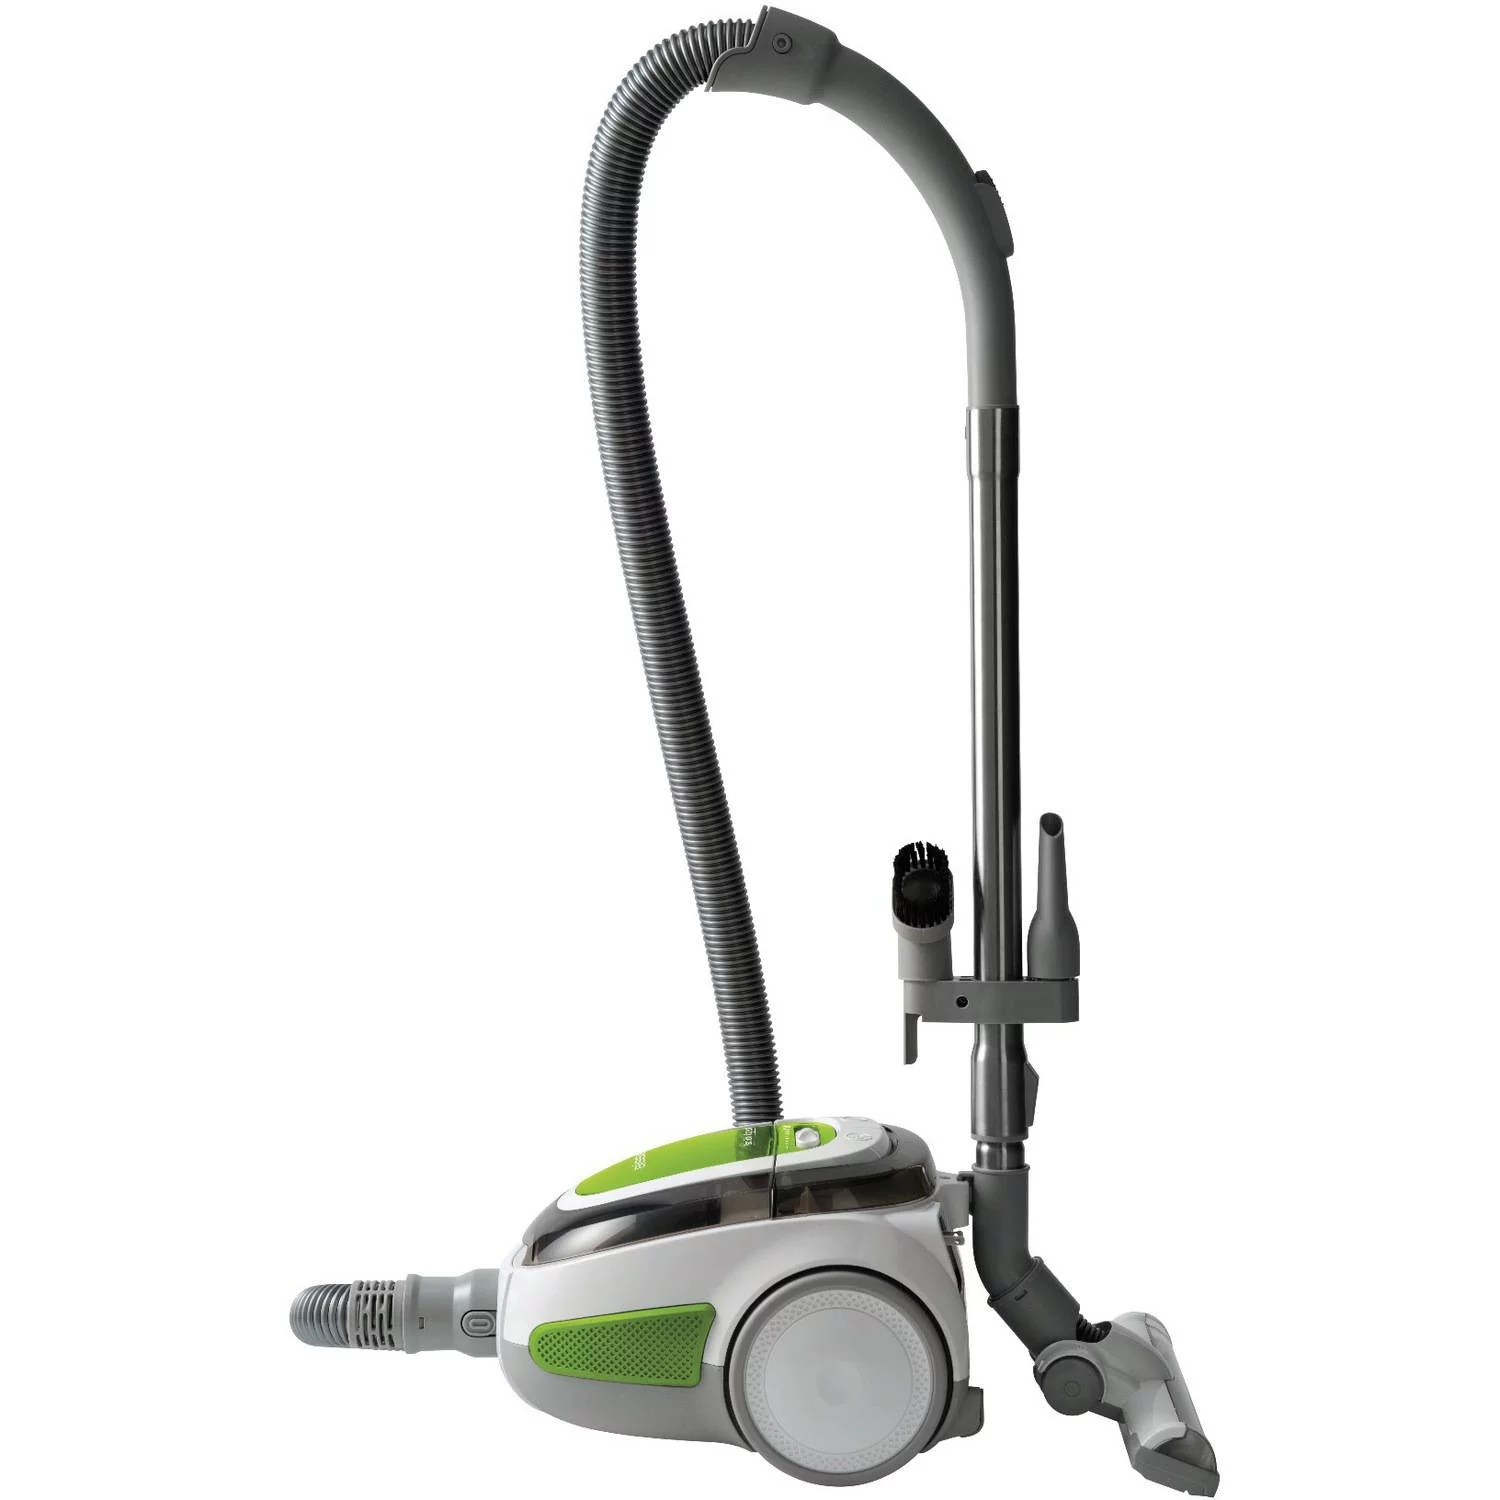 Bissell 1154W Powerful Hard Floor Expert Canister Vacuum Cleaner Brand New 11120225815  eBay